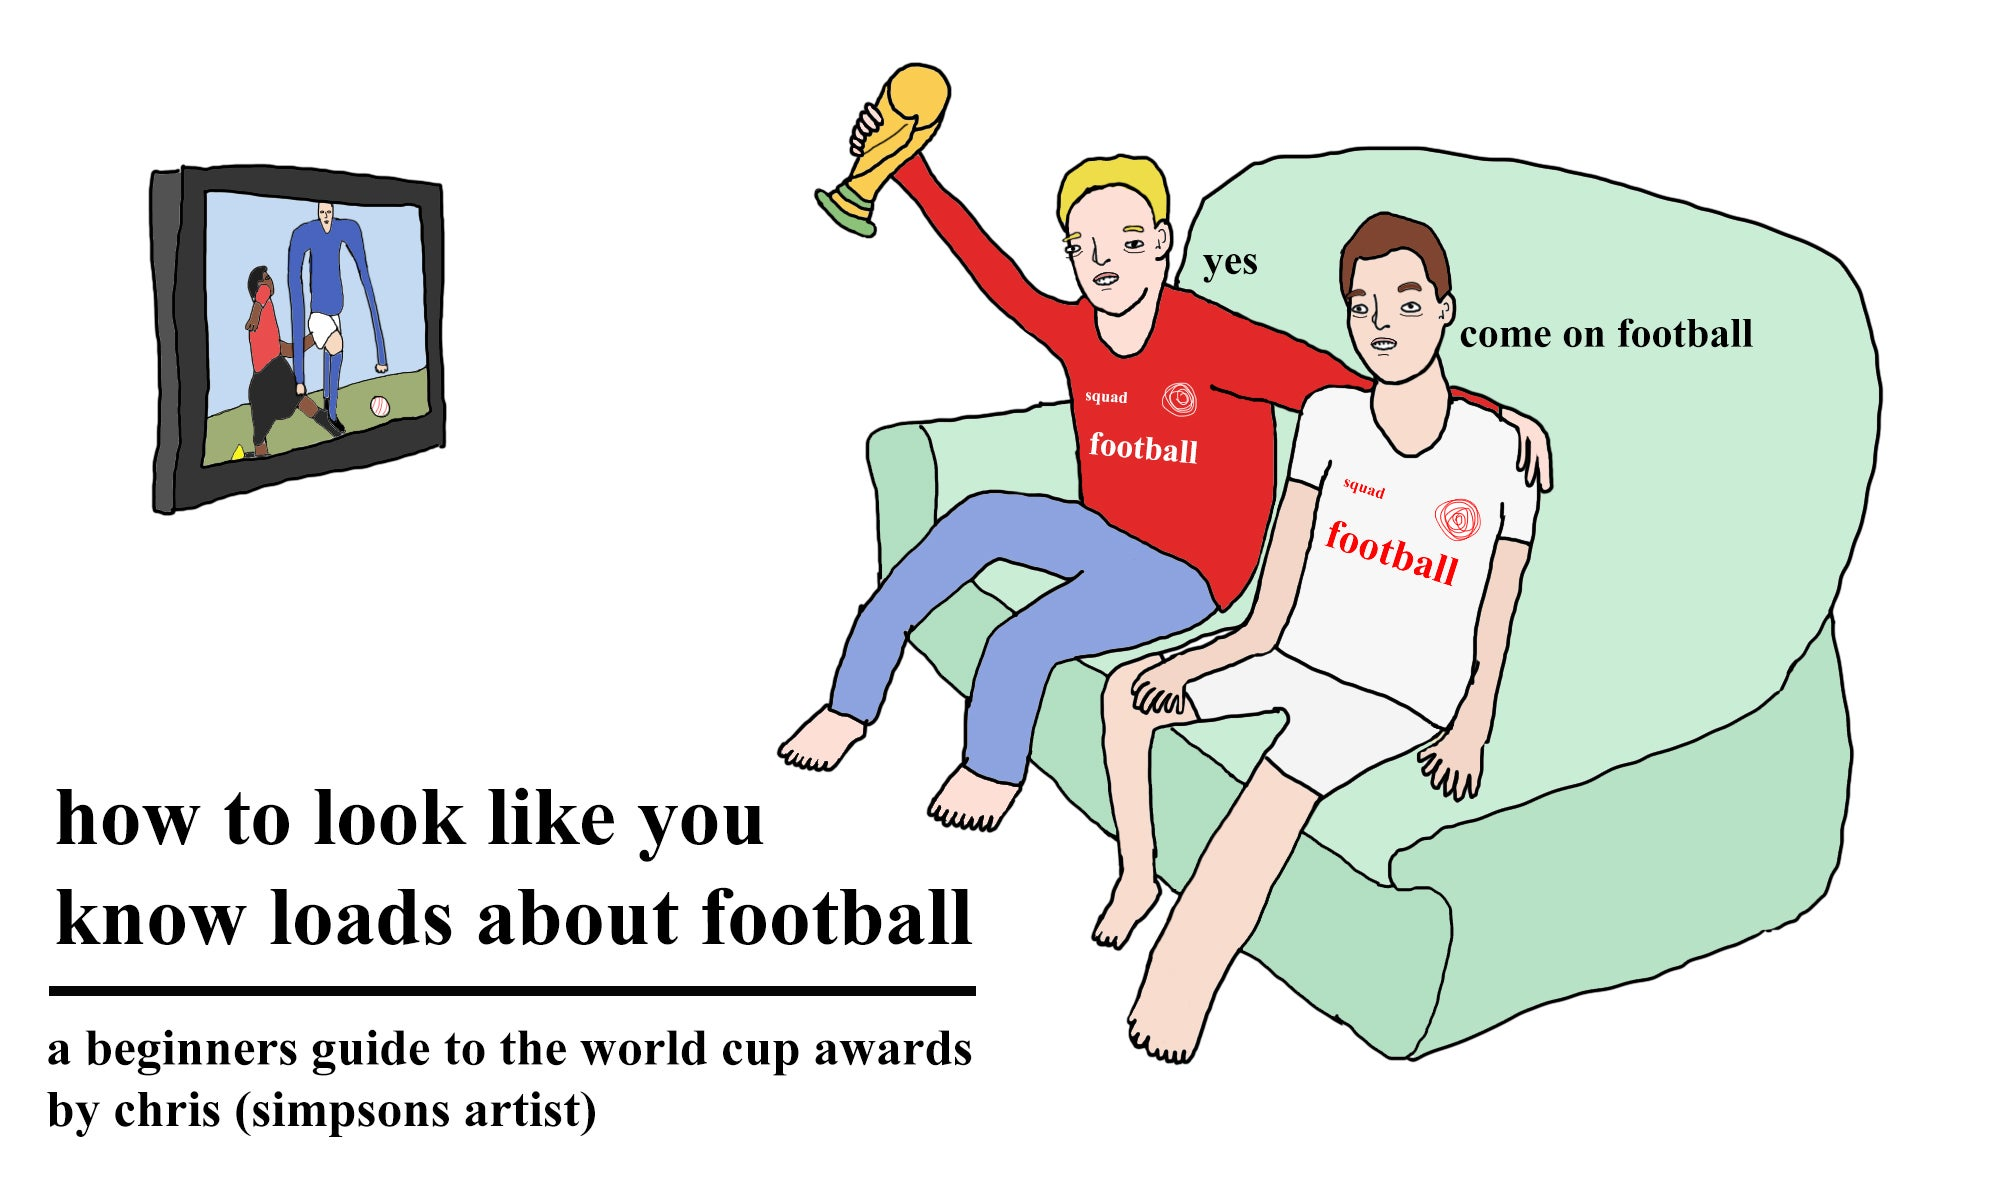 How to look like you know loads about football: A beginner's guide to